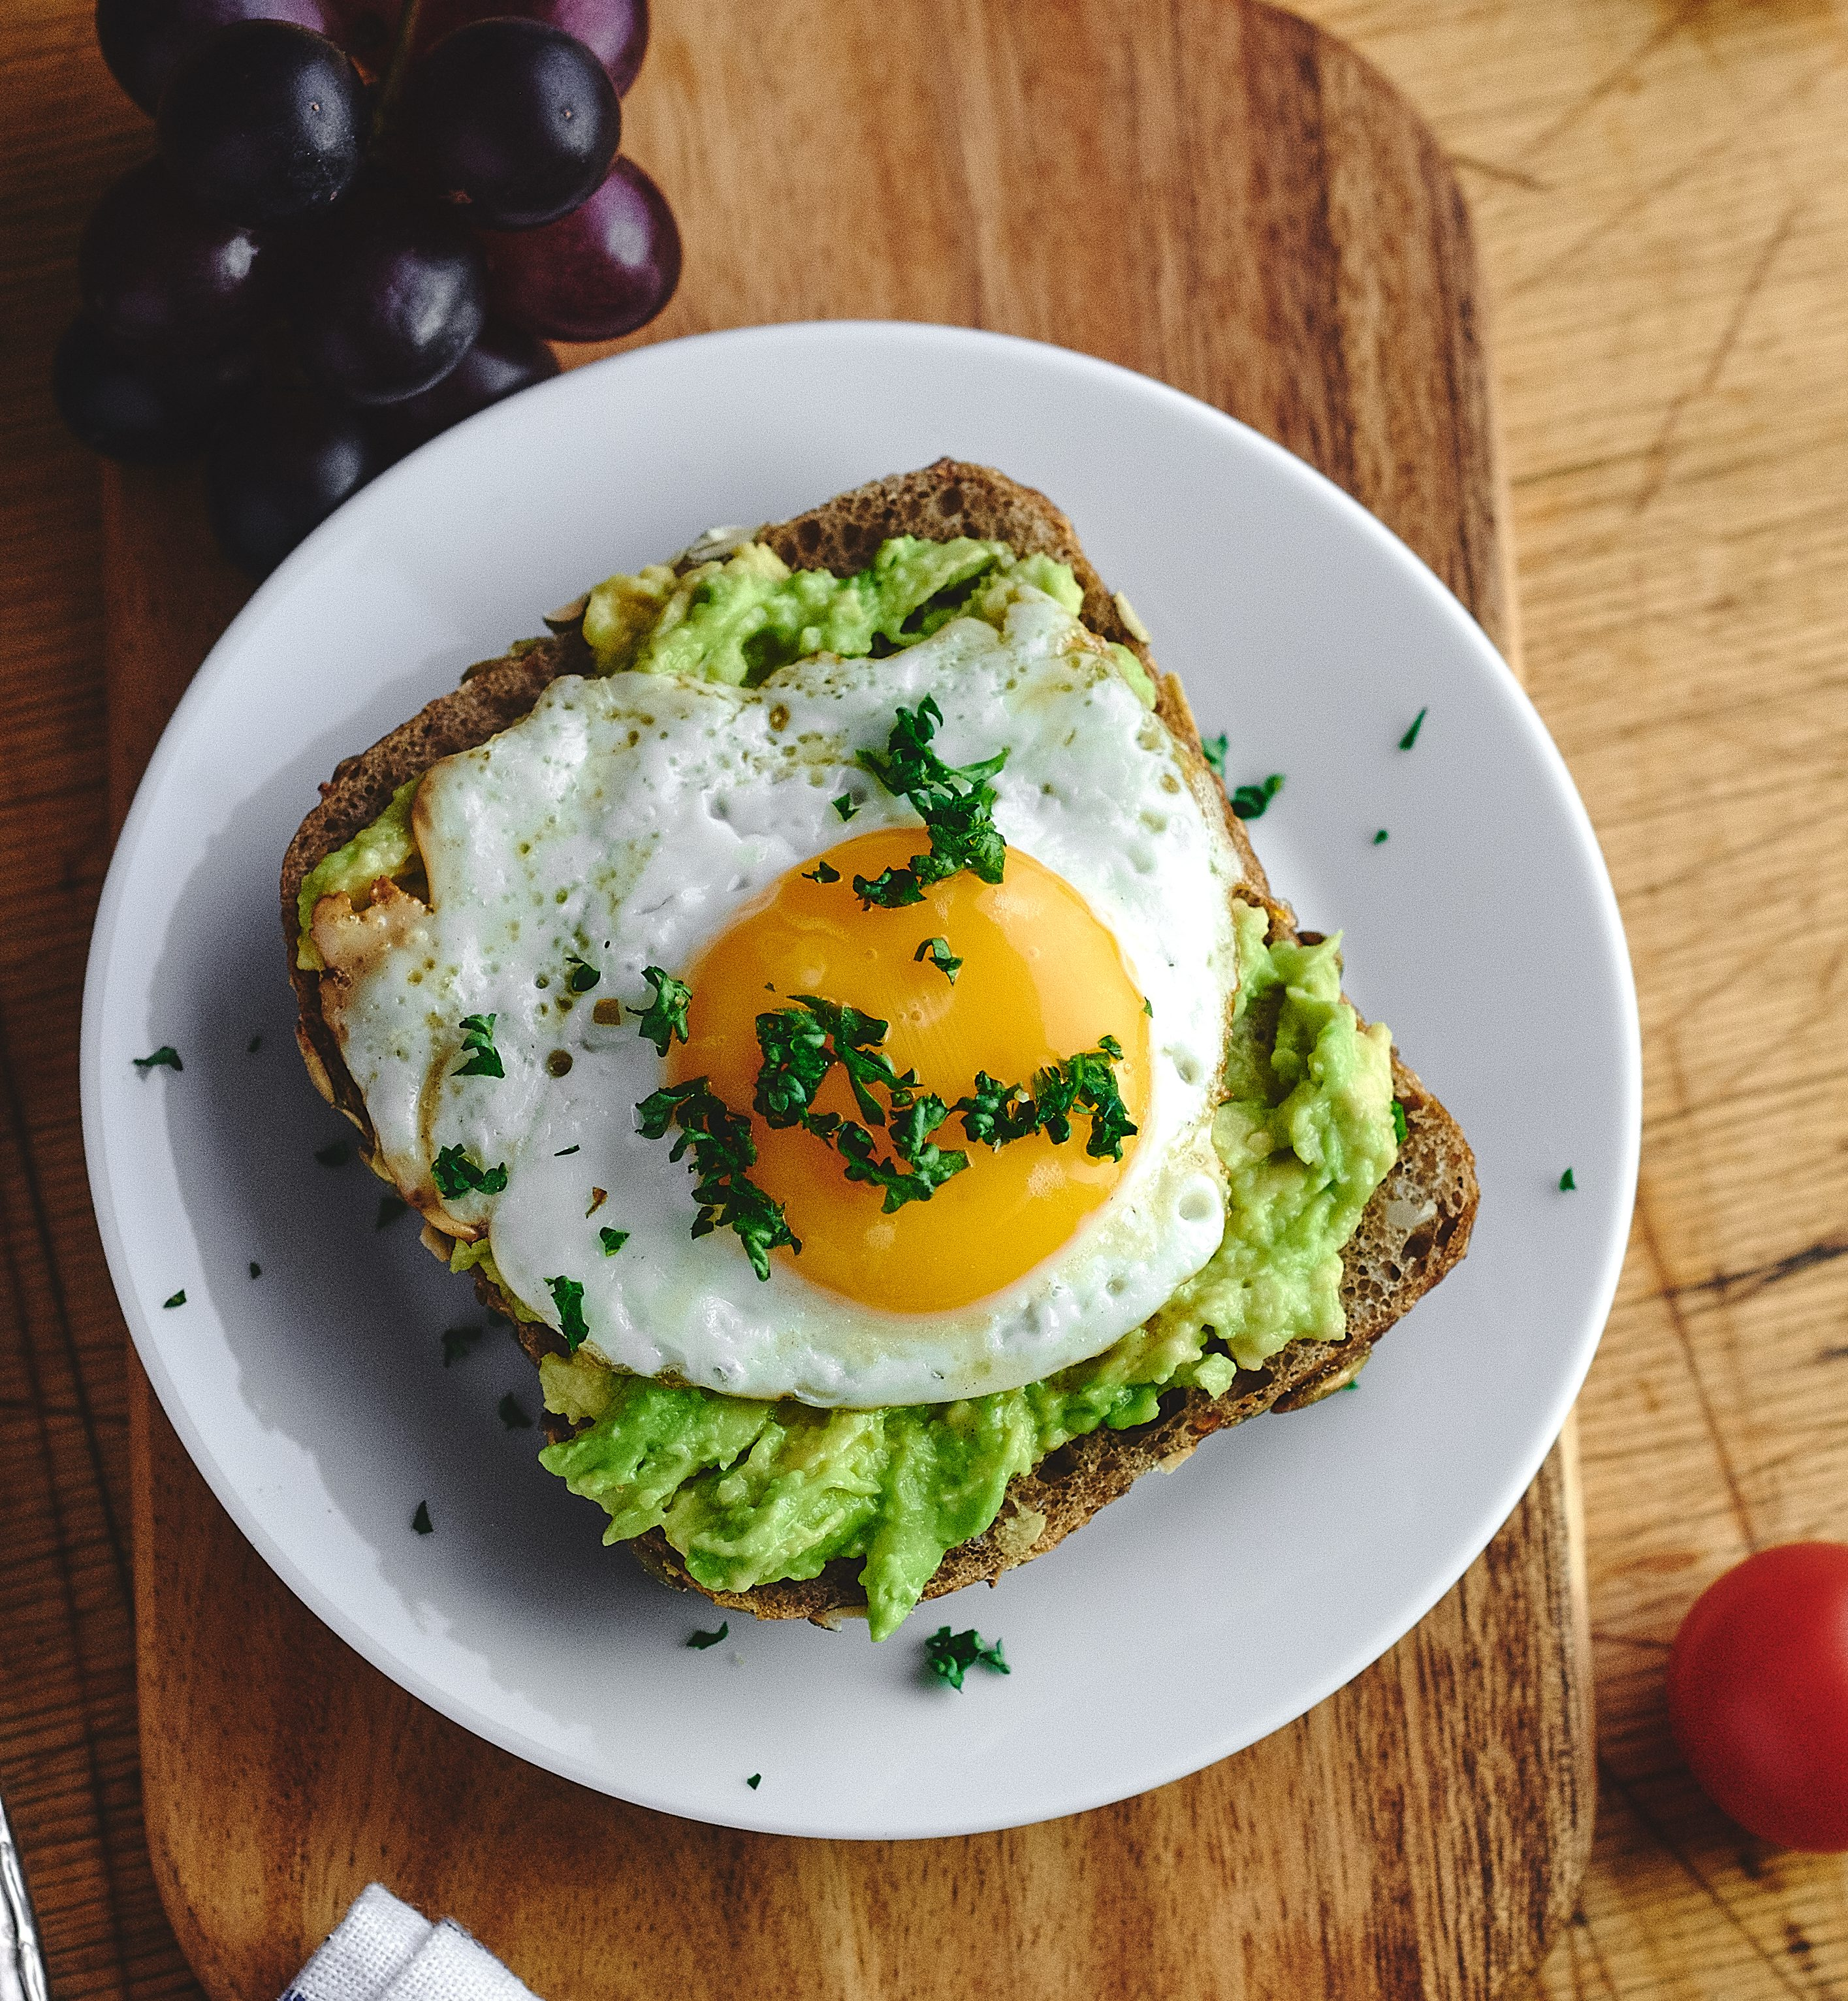 Fried egg with Avocado on bread